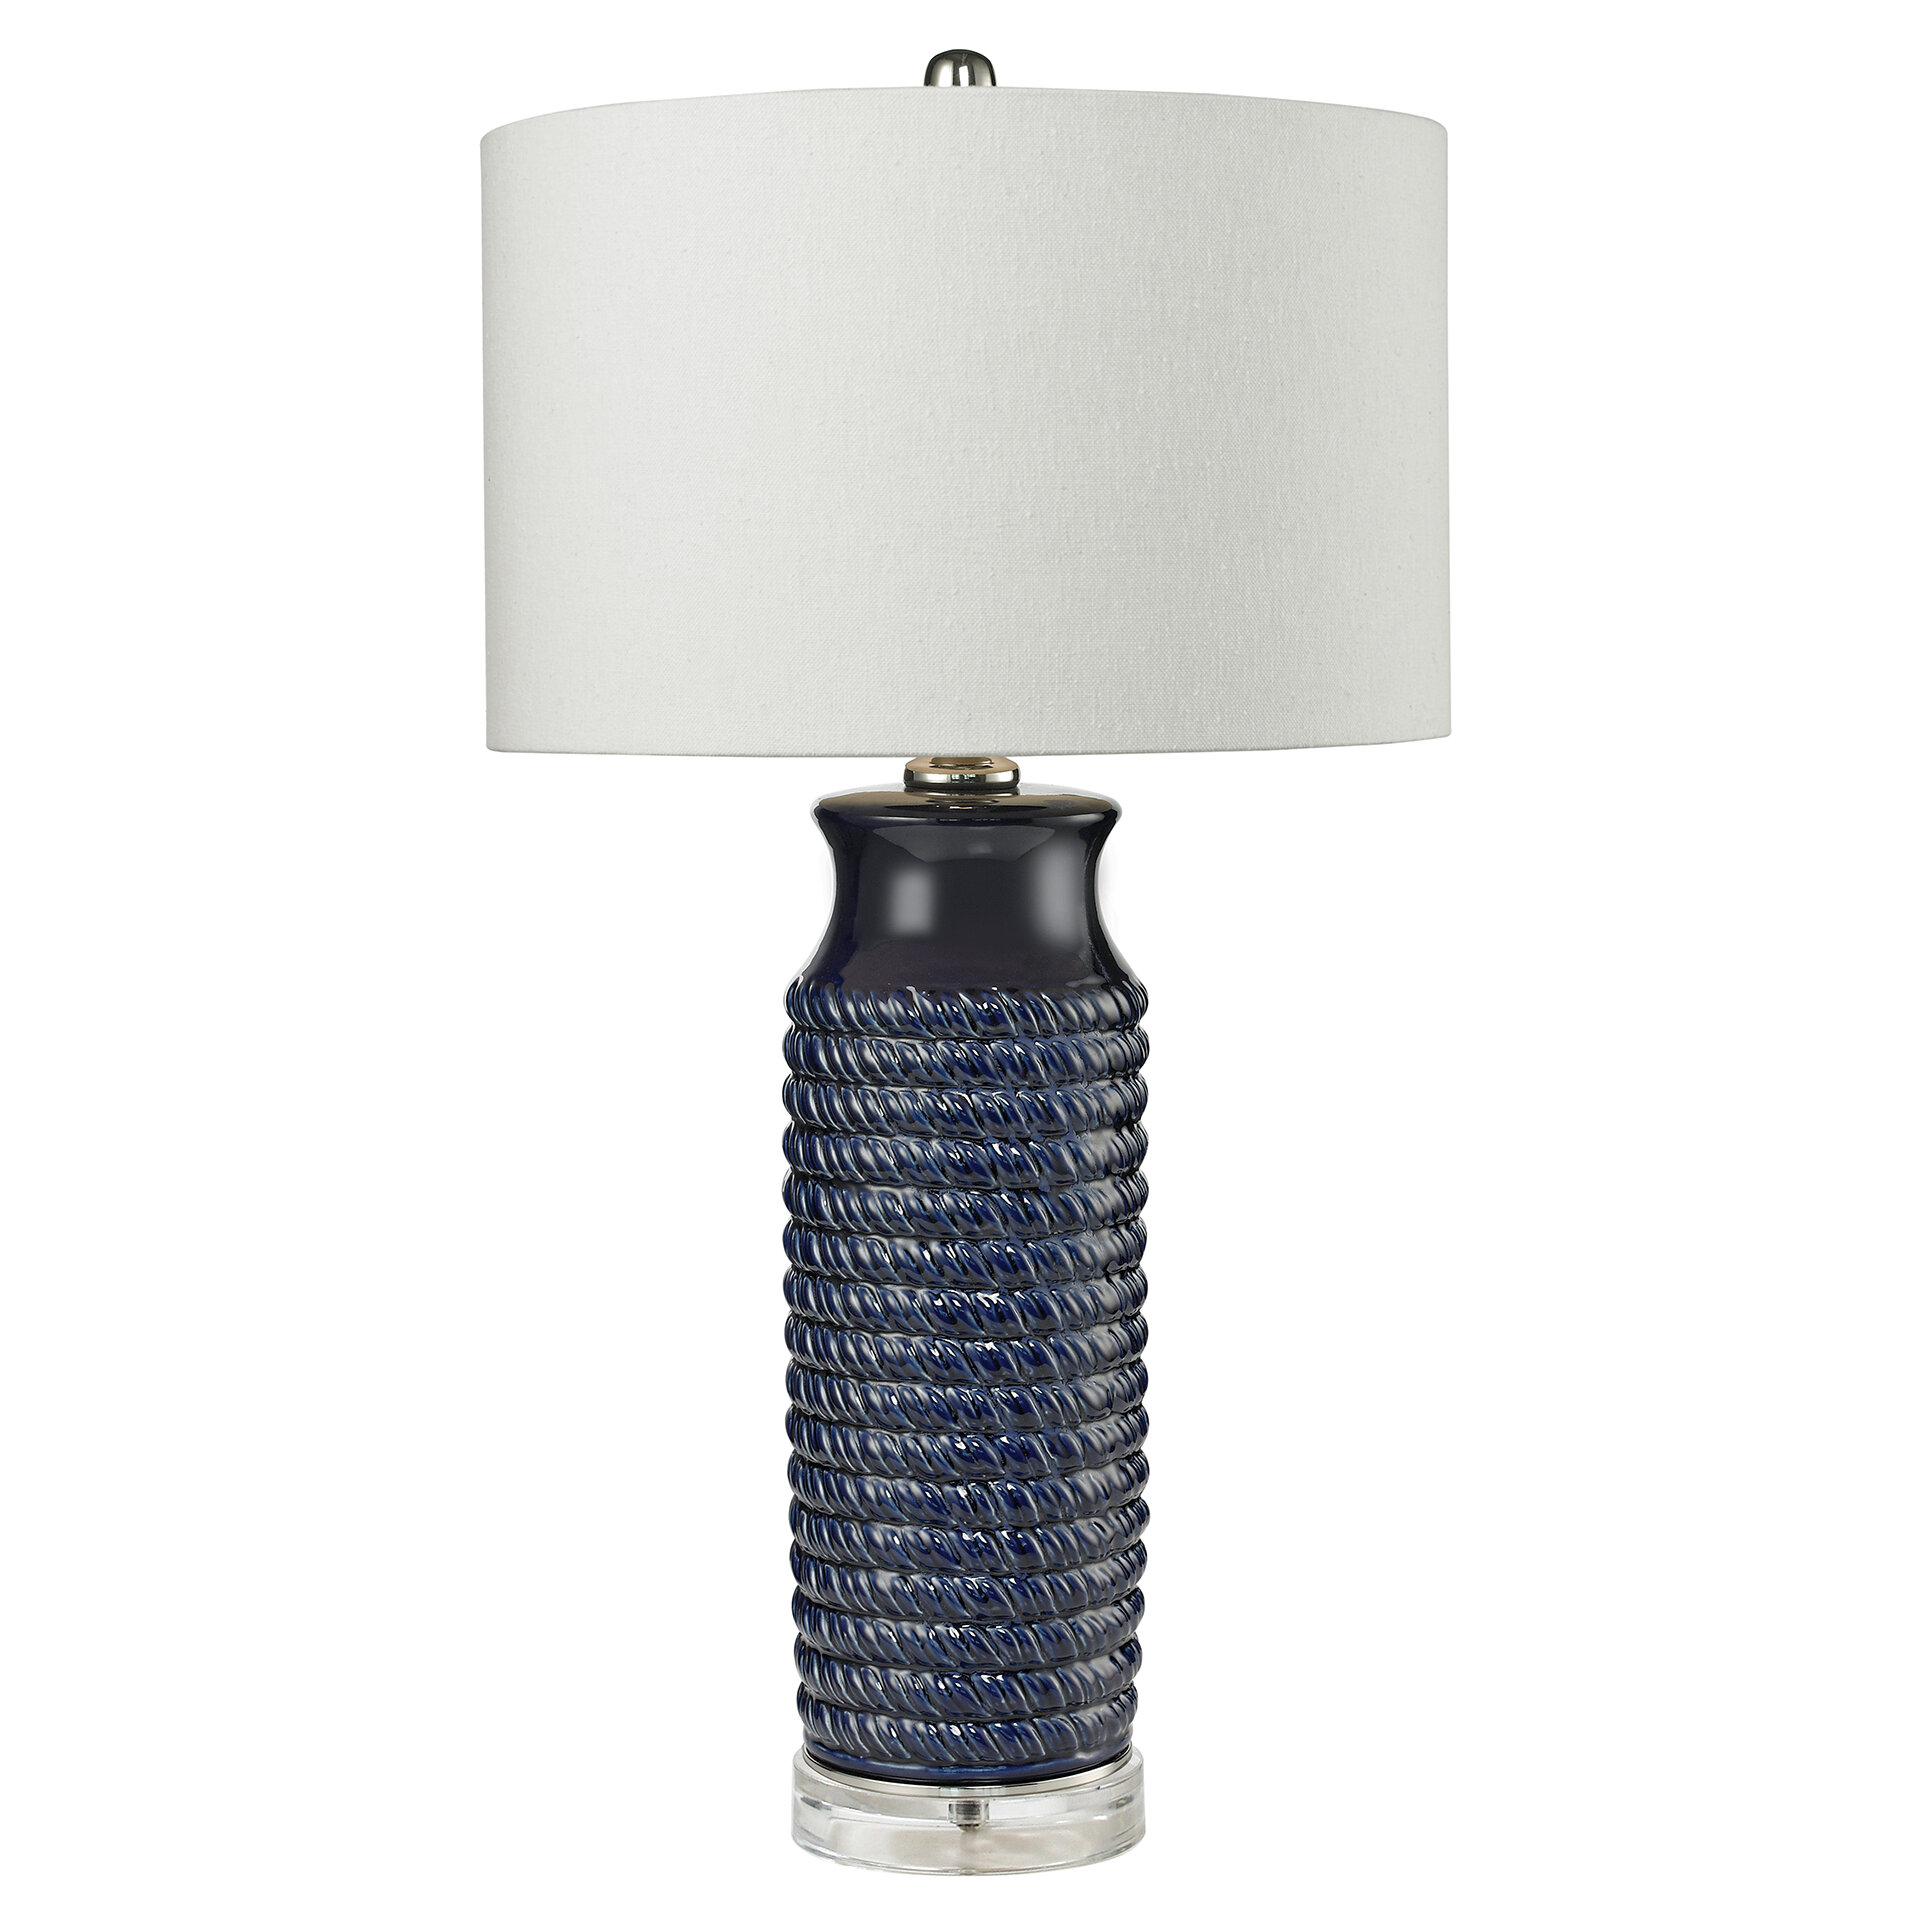 Longshore tides felicia 30 table lamp reviews wayfair